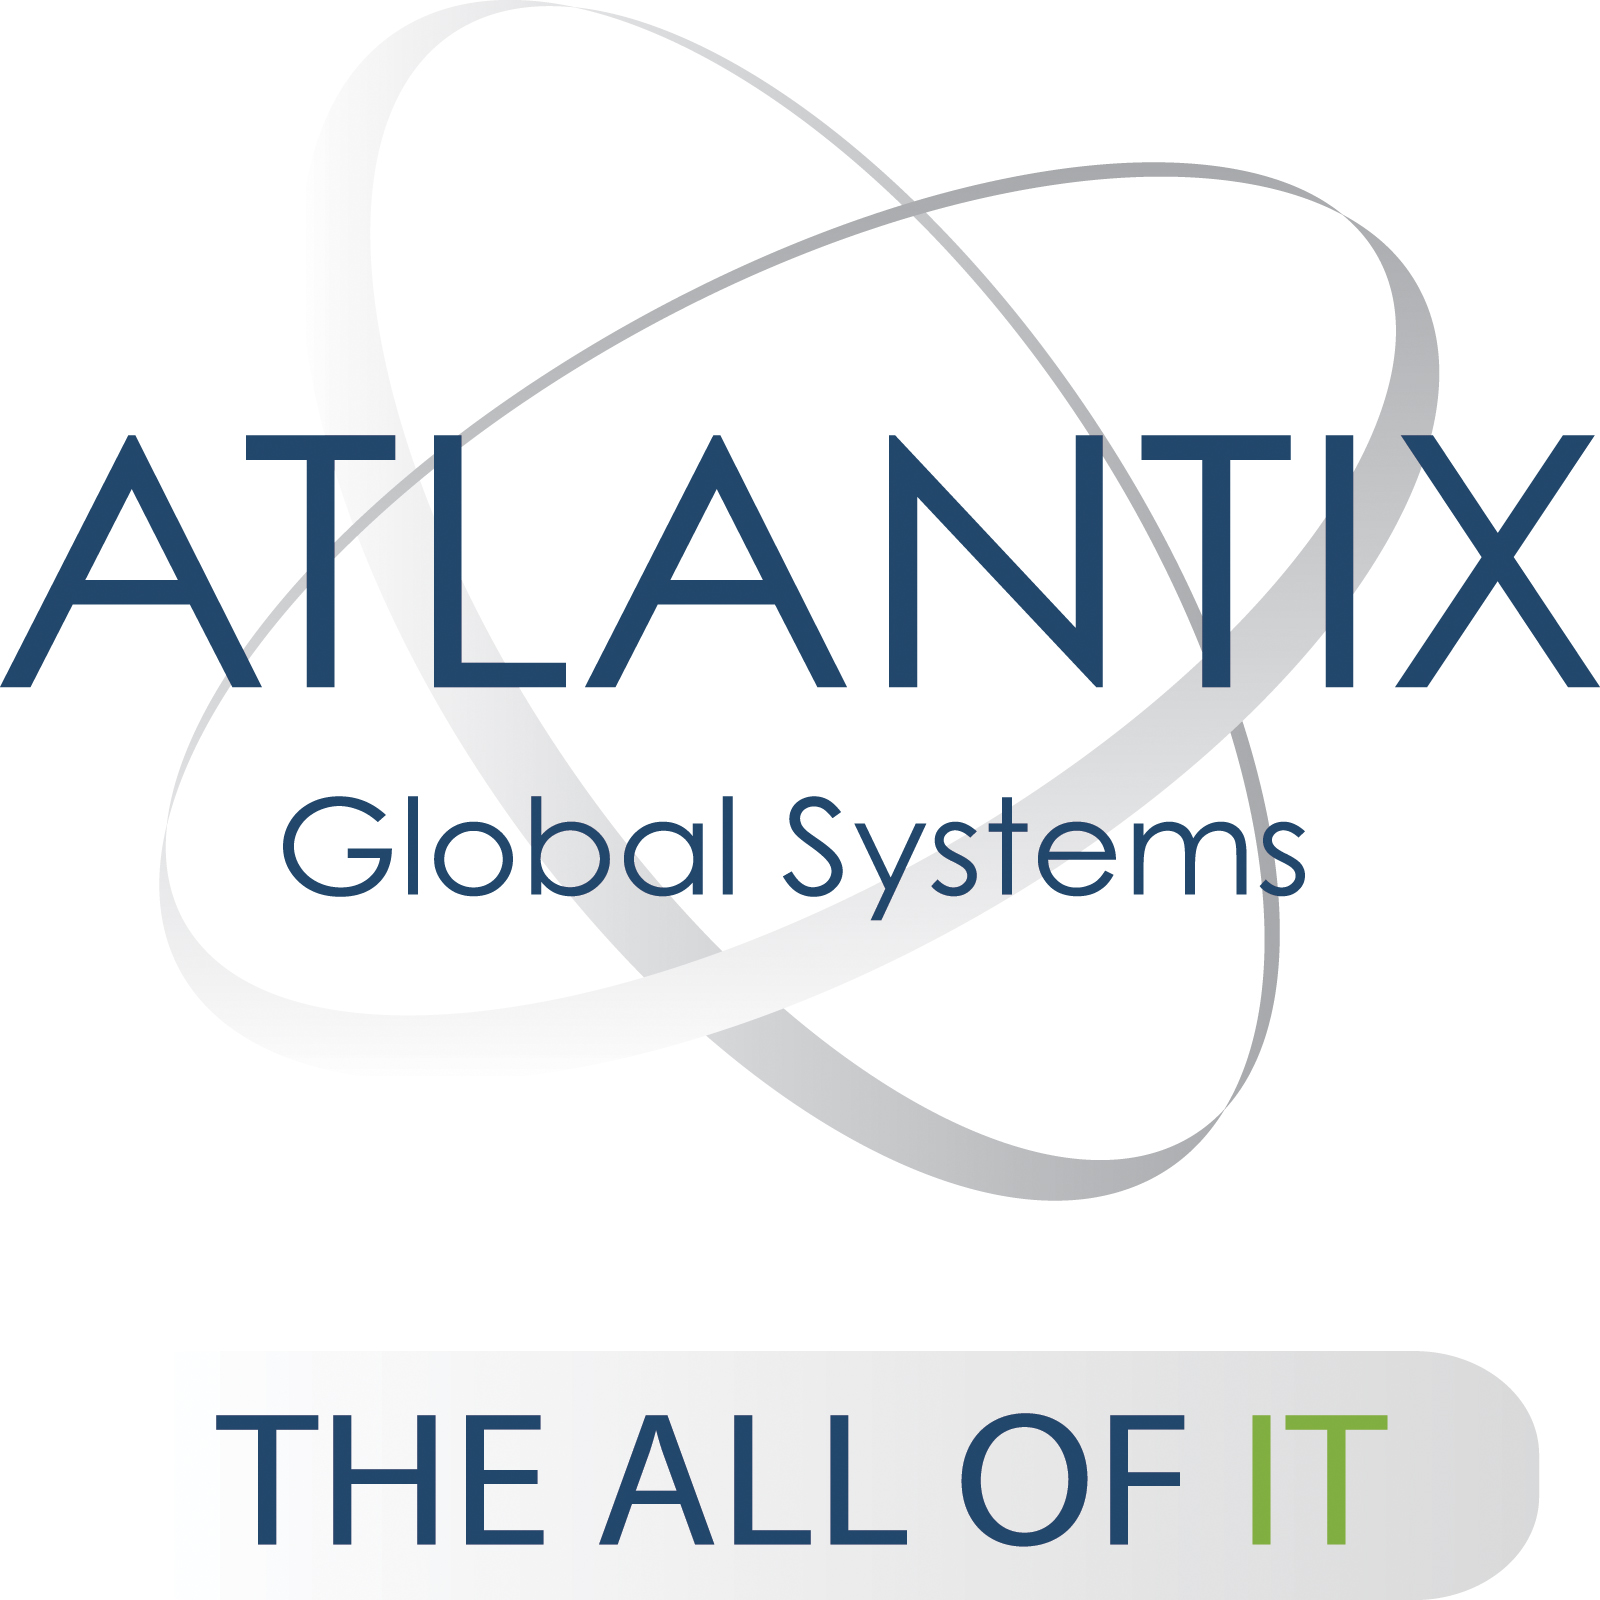 Atlantix Global=